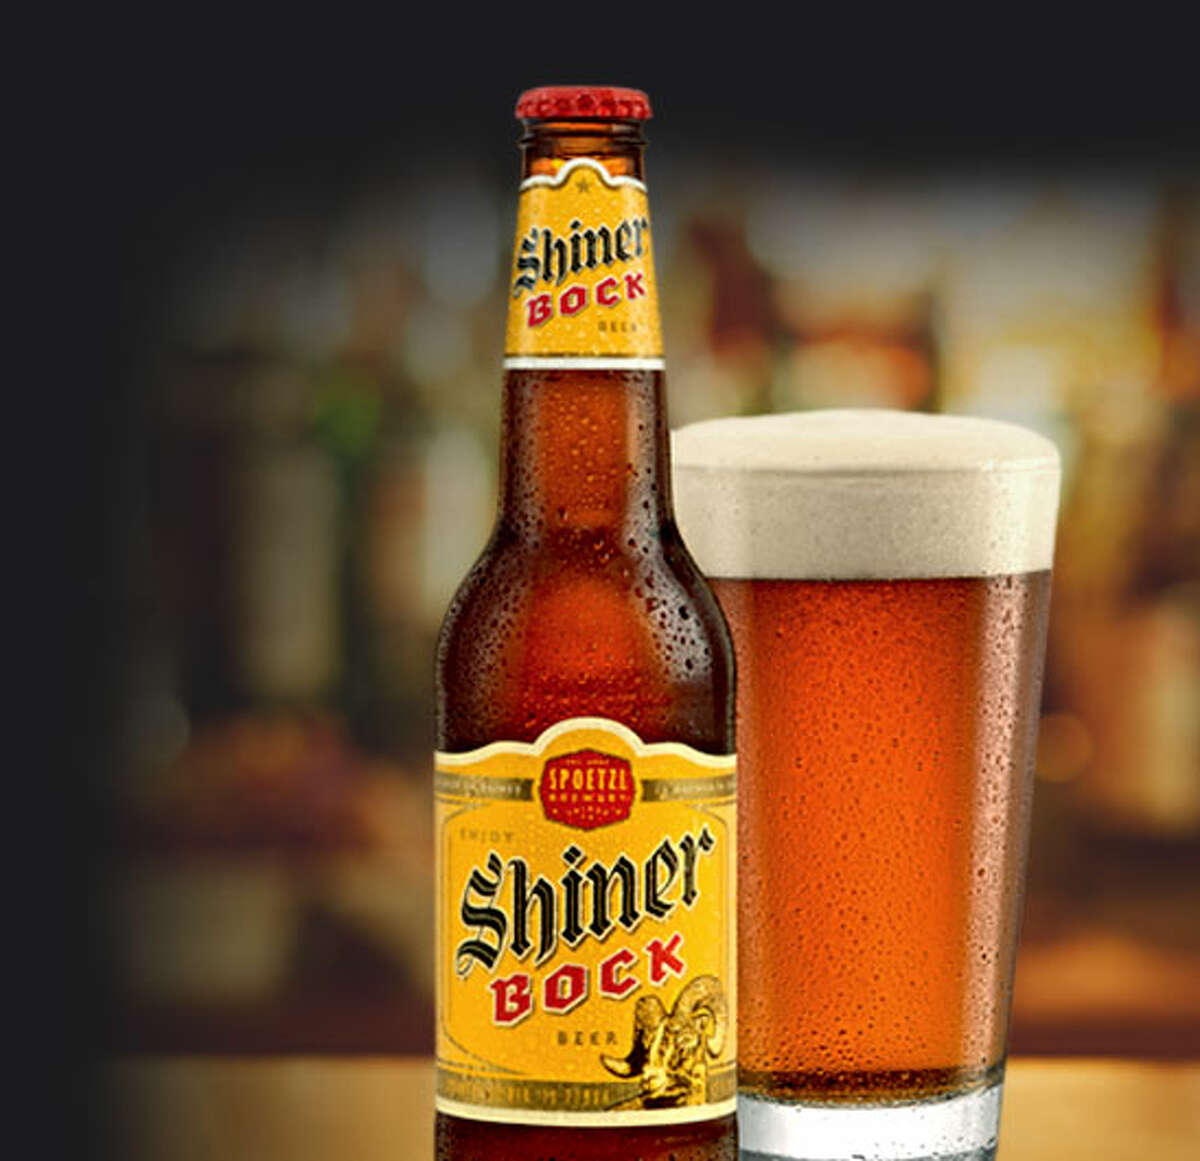 Houston: Shiner Bock Percentage of bars/restaurants with beer: 45 percent